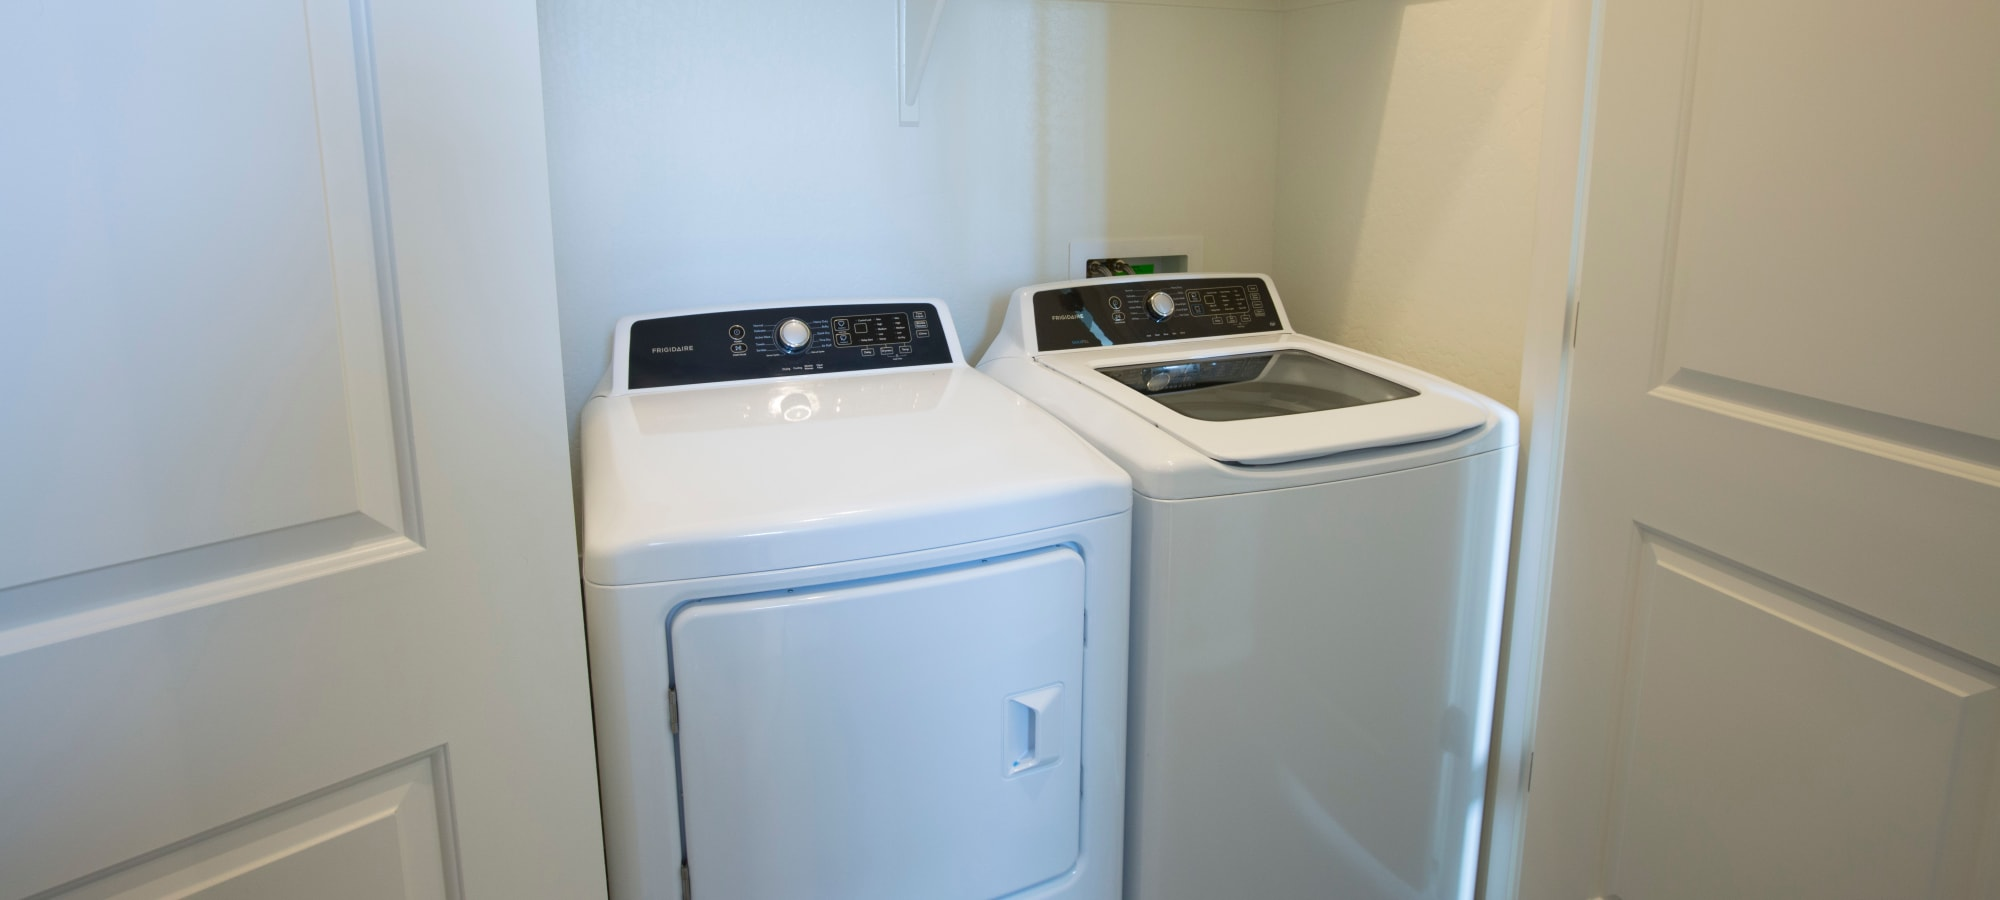 In-unit washer and dryer in a model home at Christopher Todd Communities On Happy Valley in Peoria, Arizona